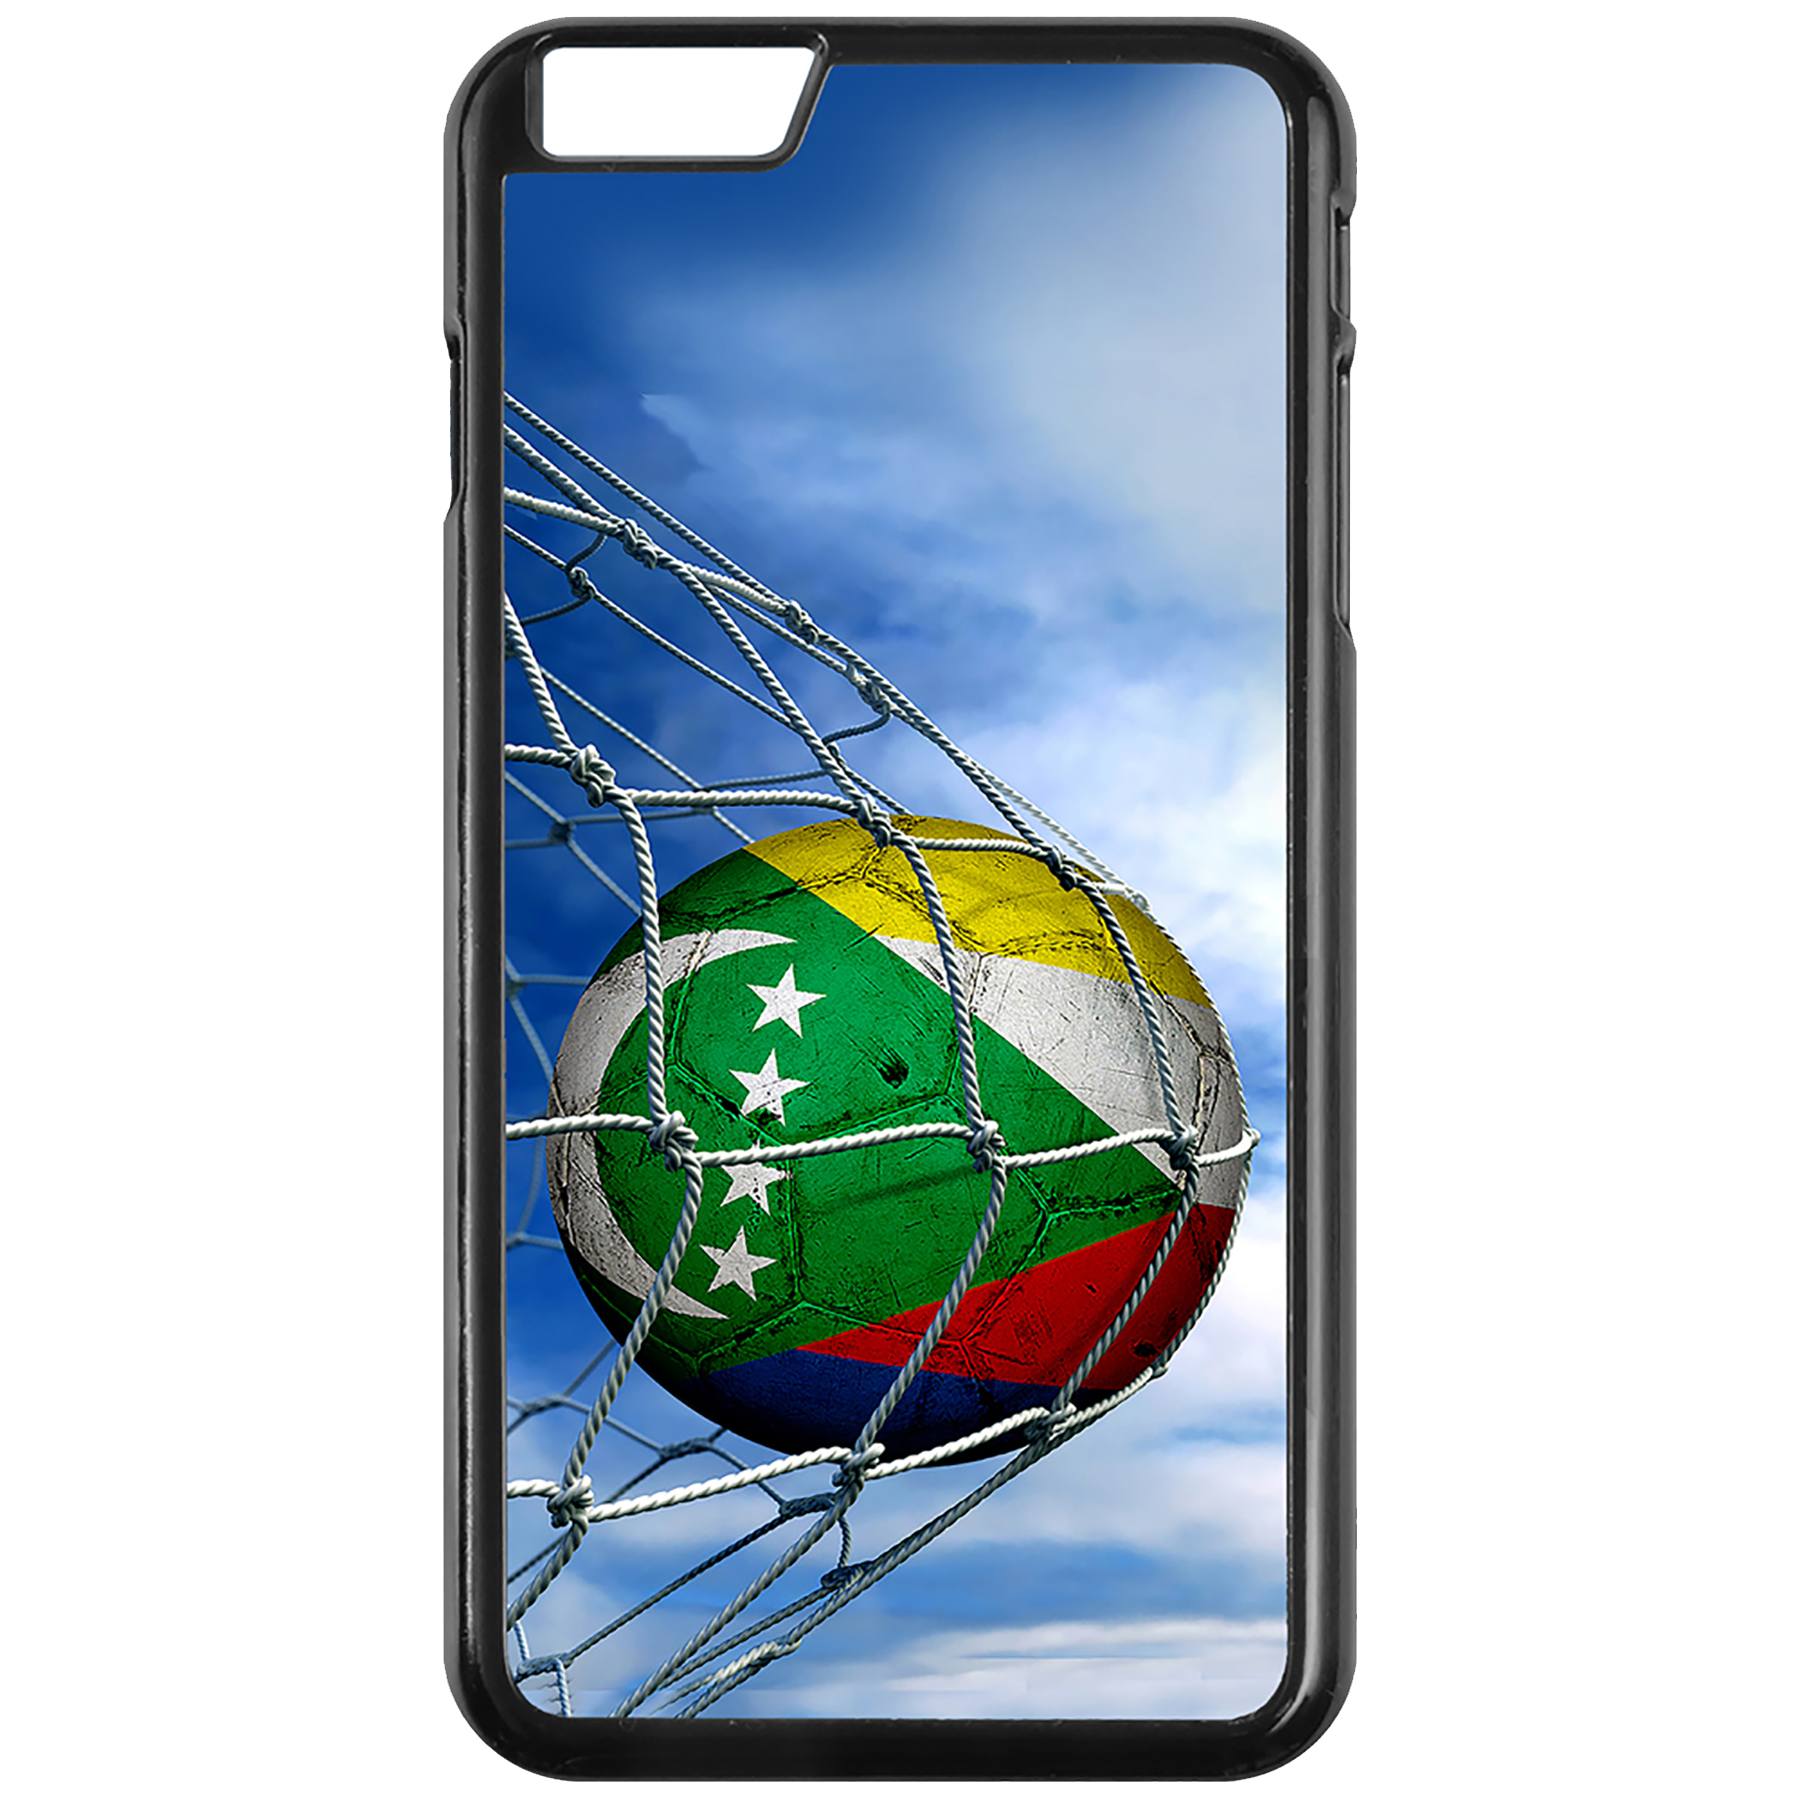 Apple-iPhone-Case-with-Flag-of-Comoros-Comorian-Many-Design-Options thumbnail 96